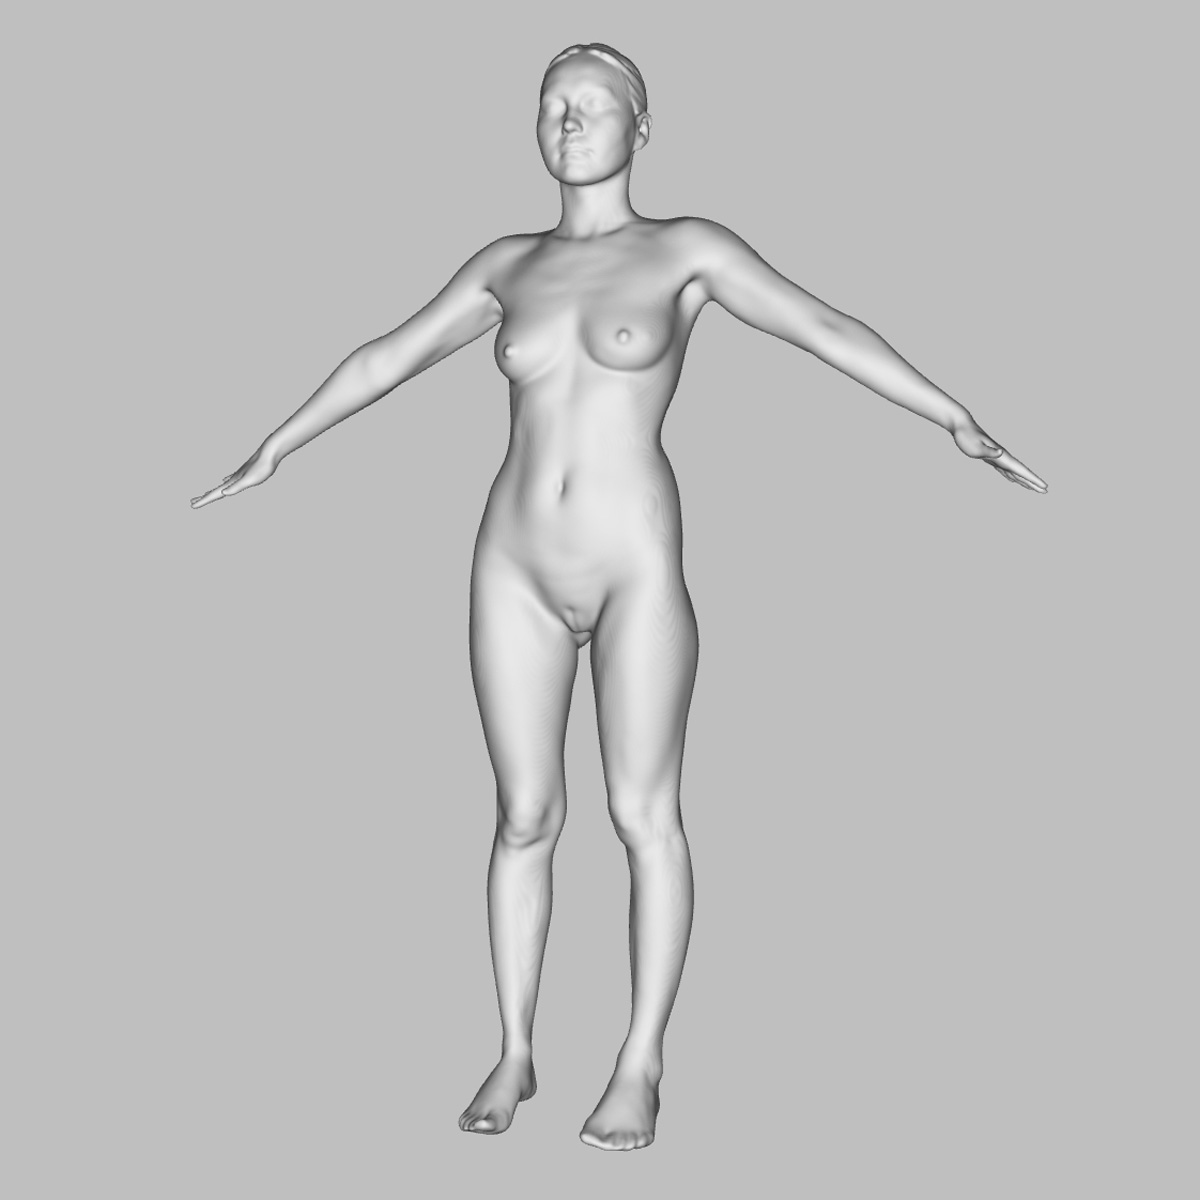 3D scan of nude vietnamese model | Anatomy References for Artists